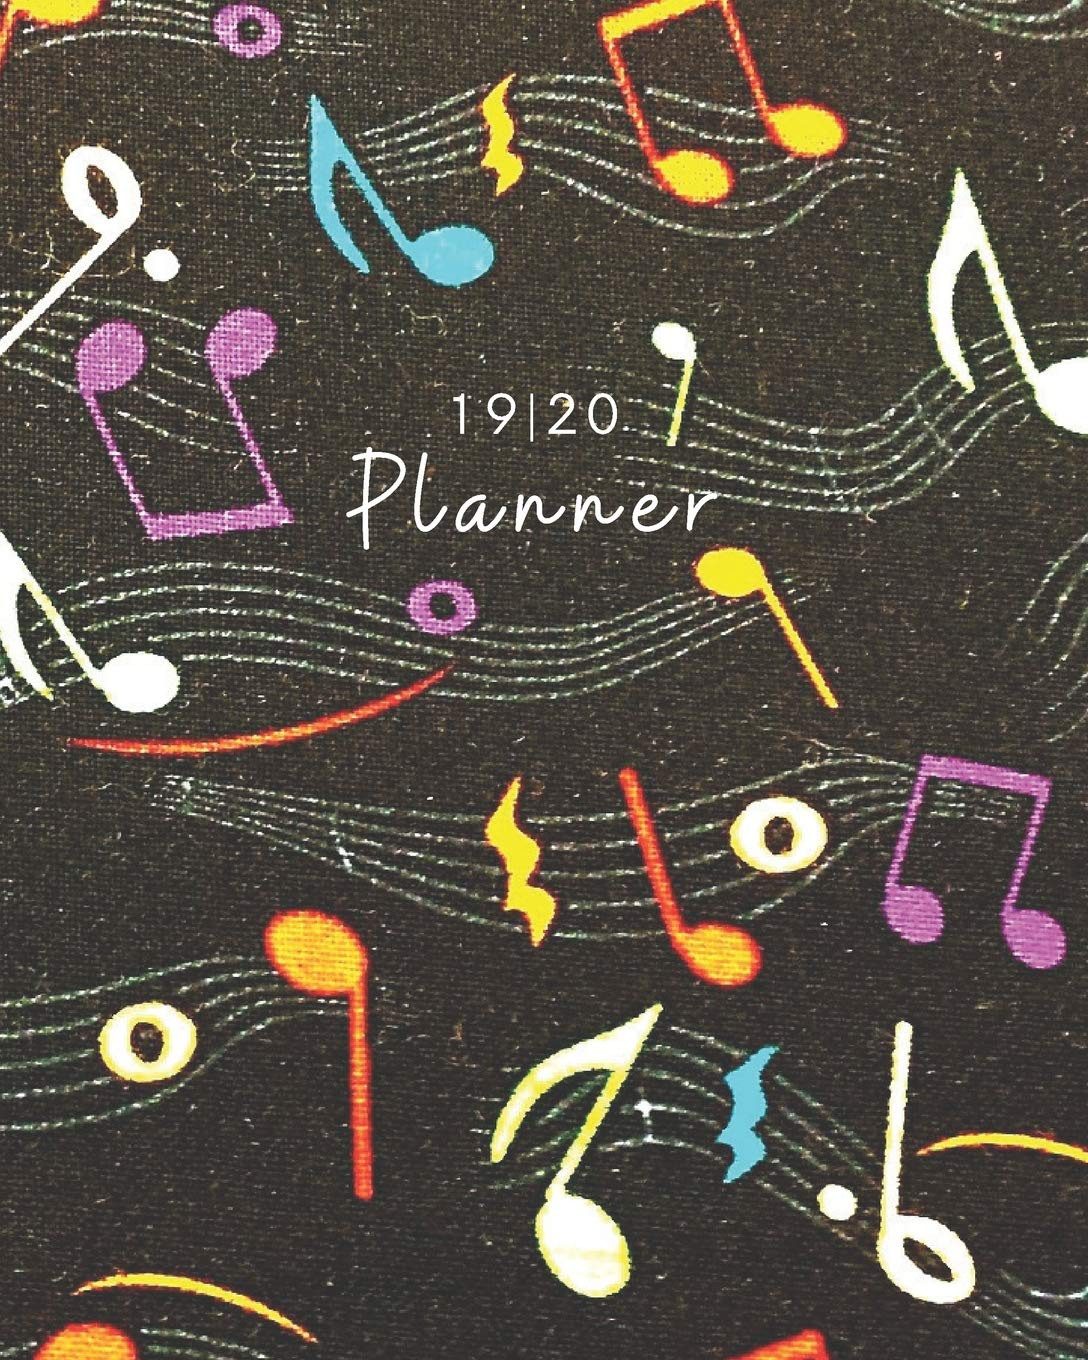 Amazon.com: 19/20 Planner: Weekly and Monthly Academic ...